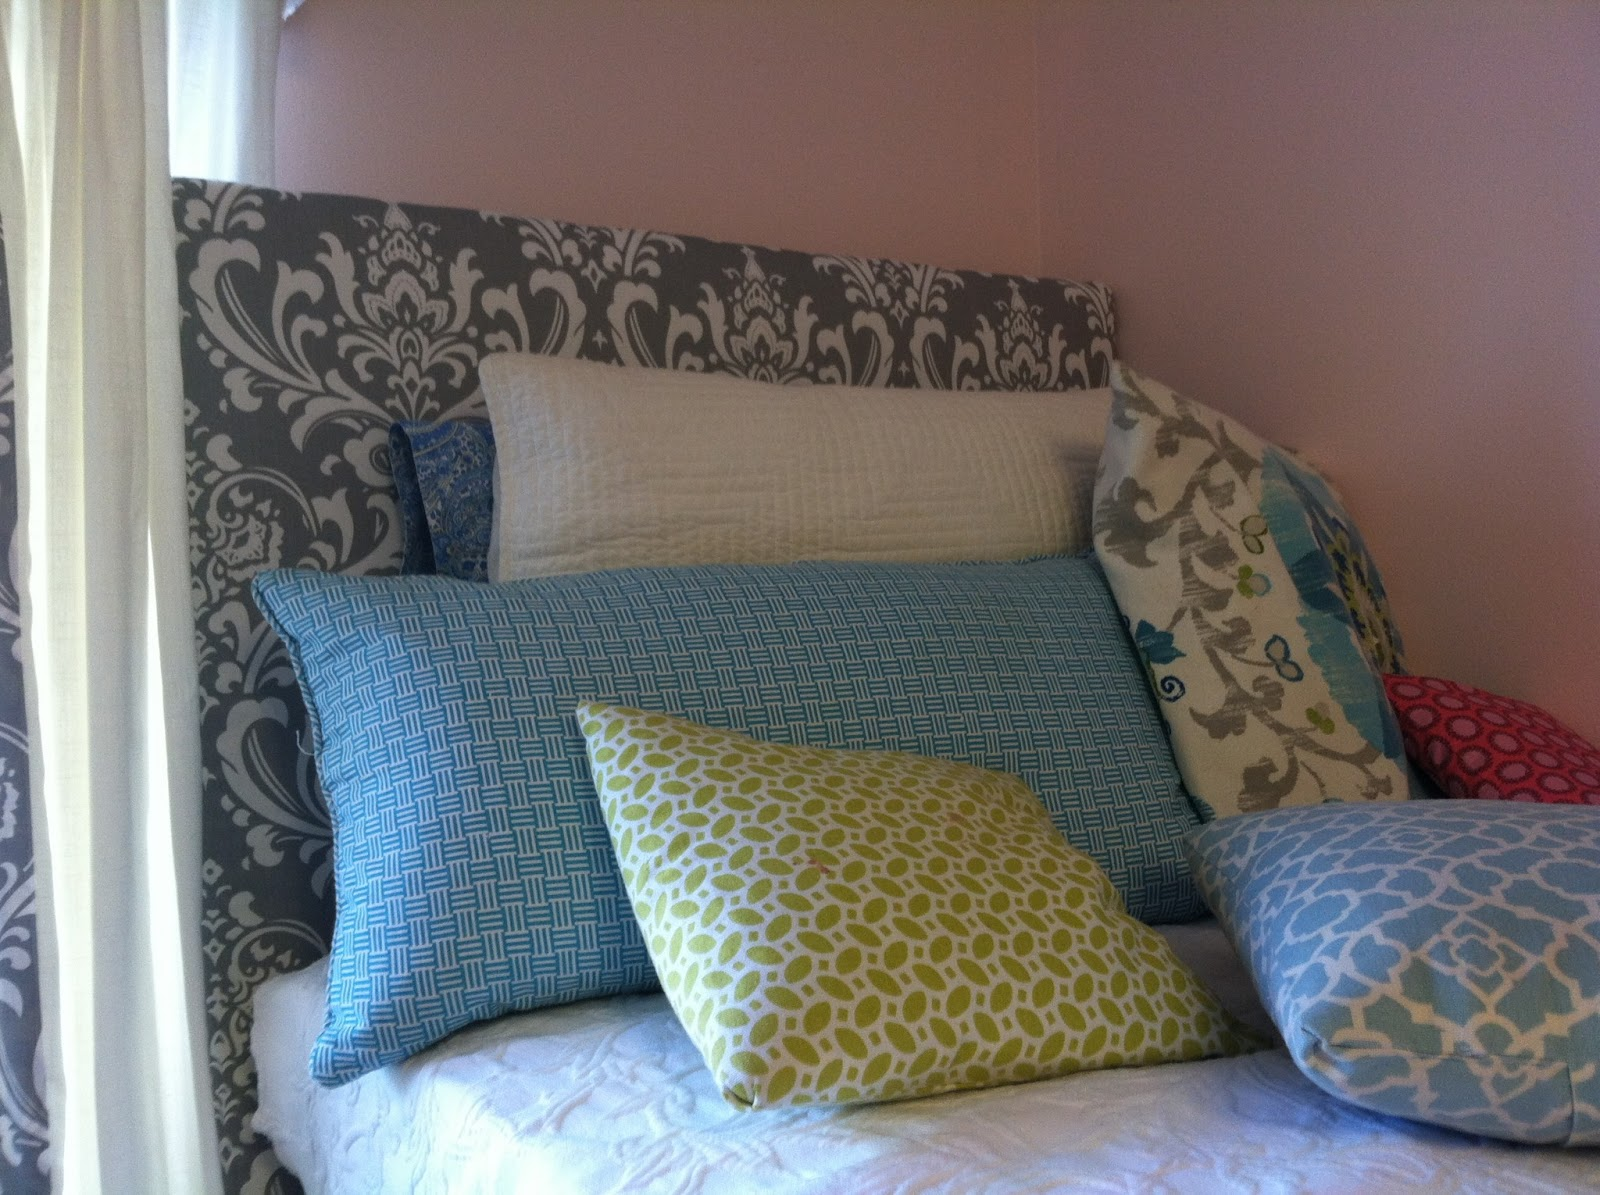 dorm chair covers etsy ikea and ottoman the old post road easy room headboard tutorial i recently made headboards for my daughter s bed in her sorority house this is a super project